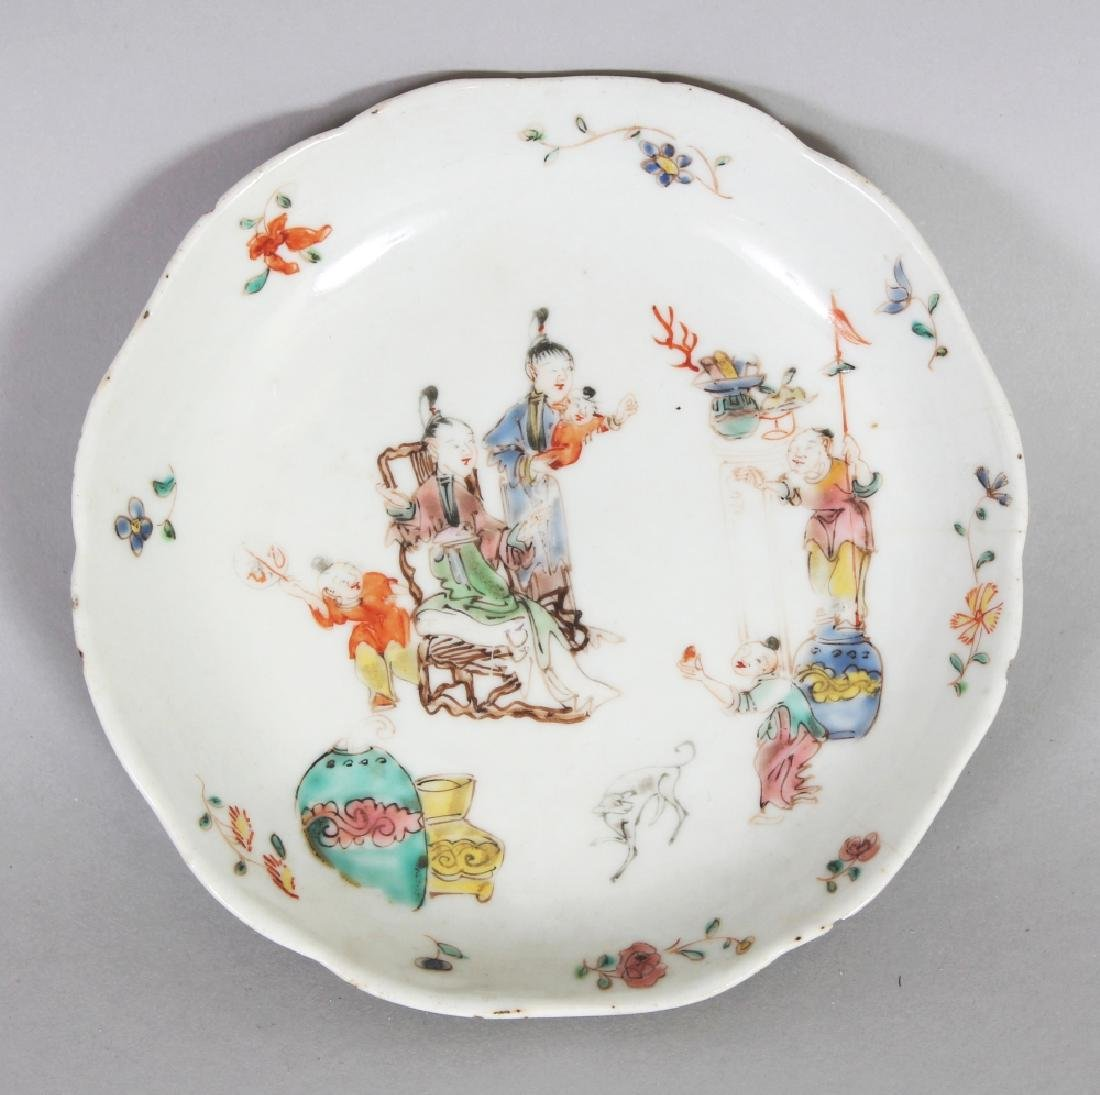 A GOOD QUALITY 18TH CENTURY CHINESE QIANLONG PERIOD